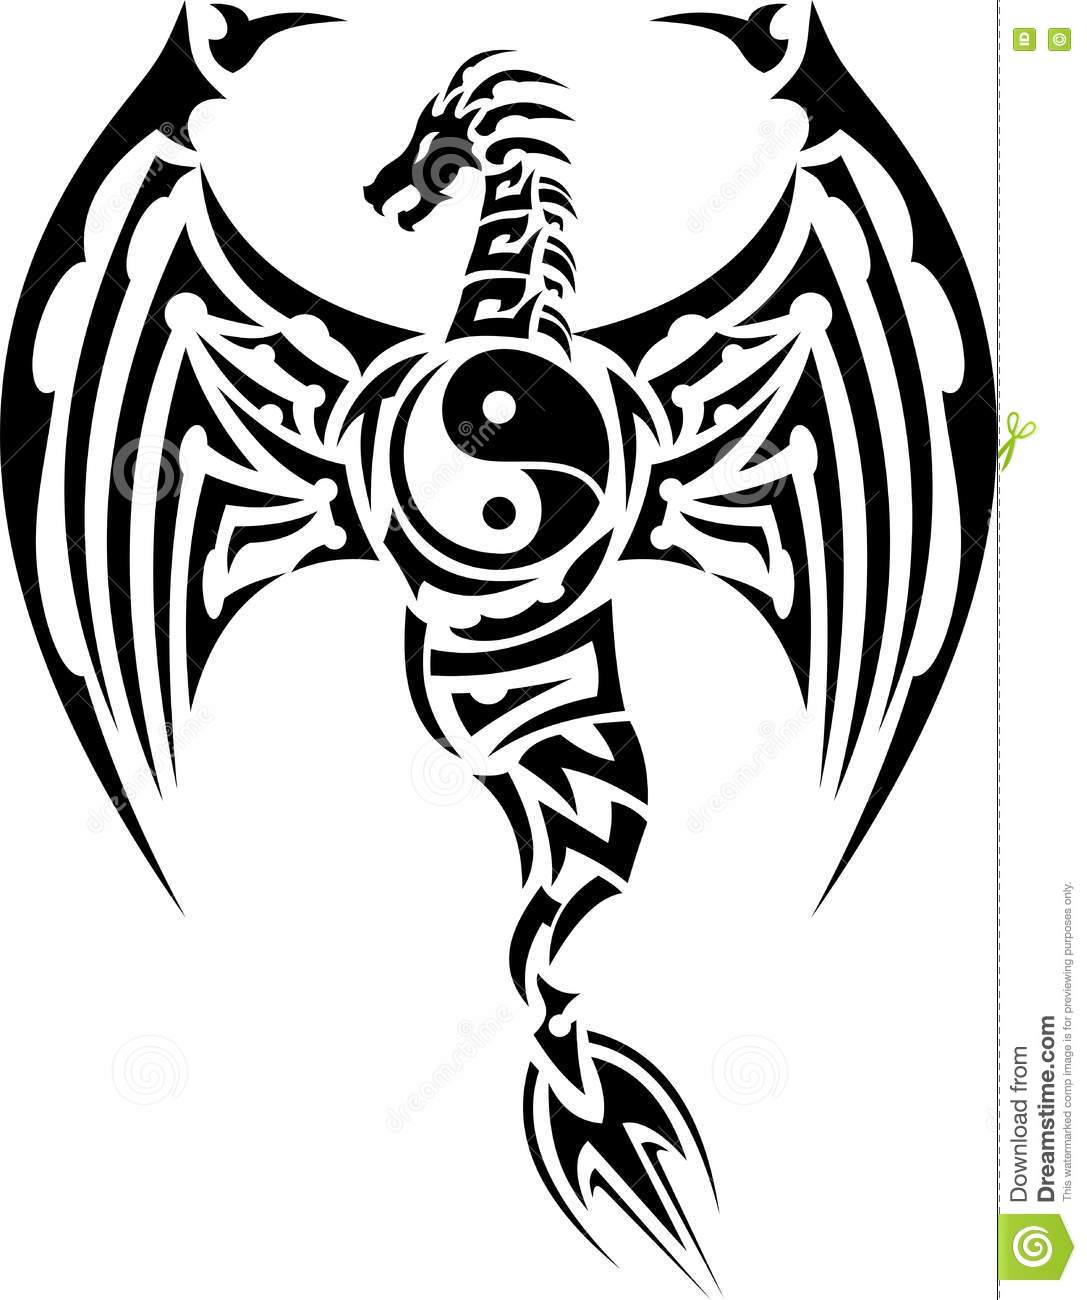 Tribal Dragon Tattoo With Yin Yang Symbol Stock Vector